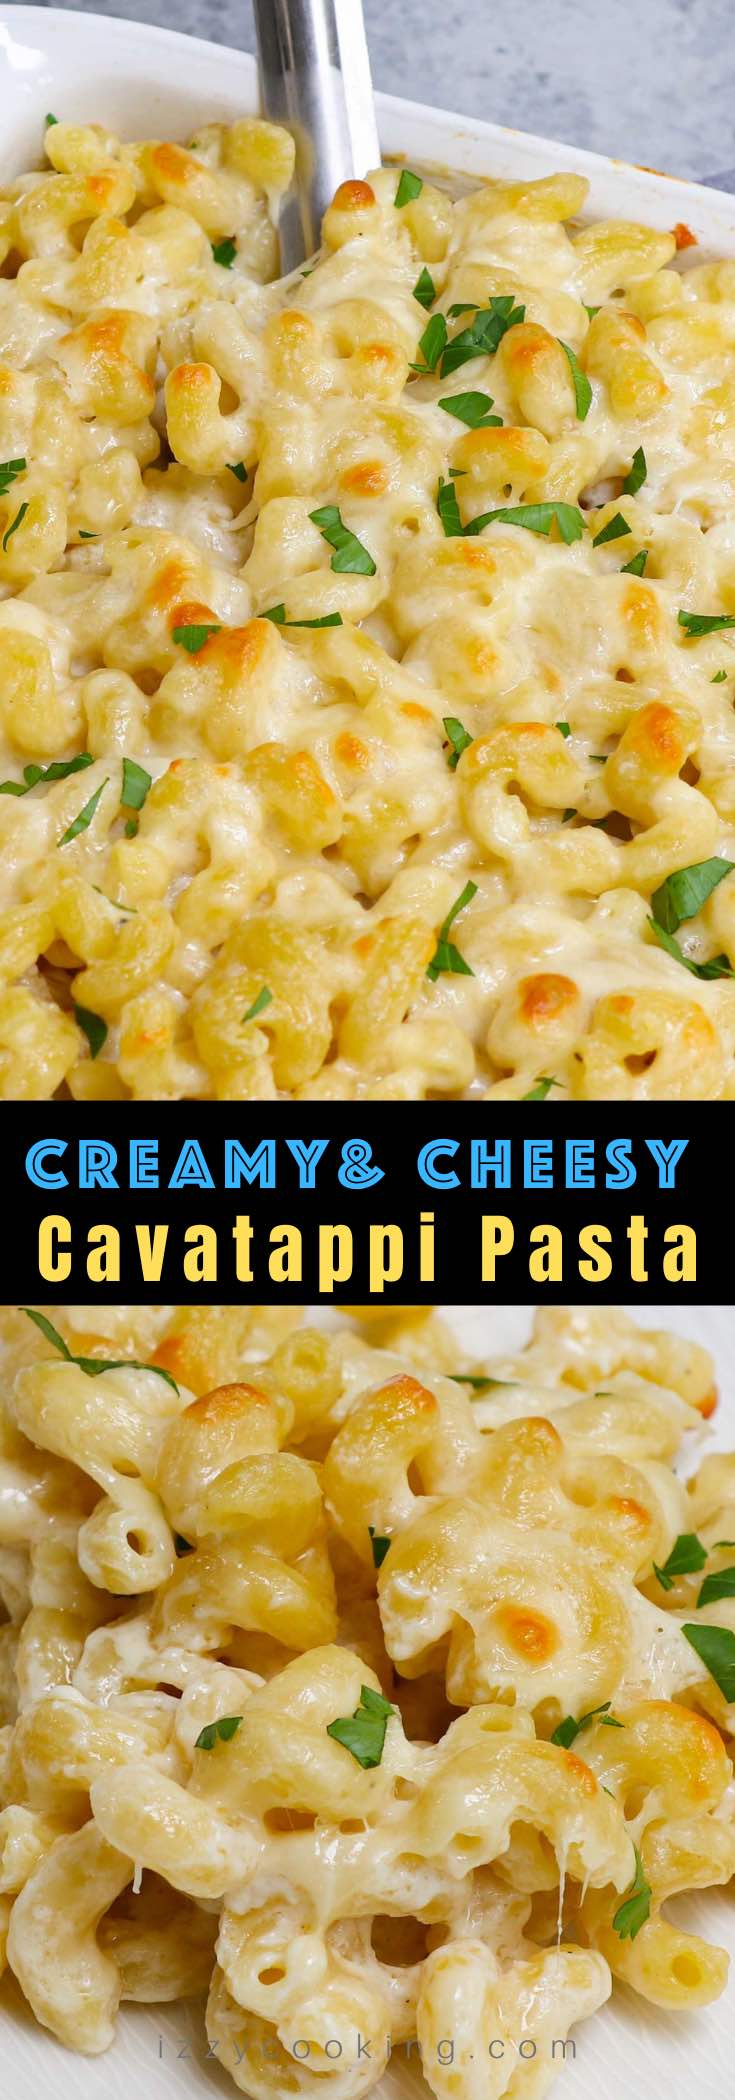 This creamy and cheesy Cavatappi Pasta is a grown-up version of mac and cheese. Also called corkscrew pasta, cavatappi noodles are delicious on its own or served as a side at your next family dinner. I used a homemade cheese sauce to take this recipe over the top!